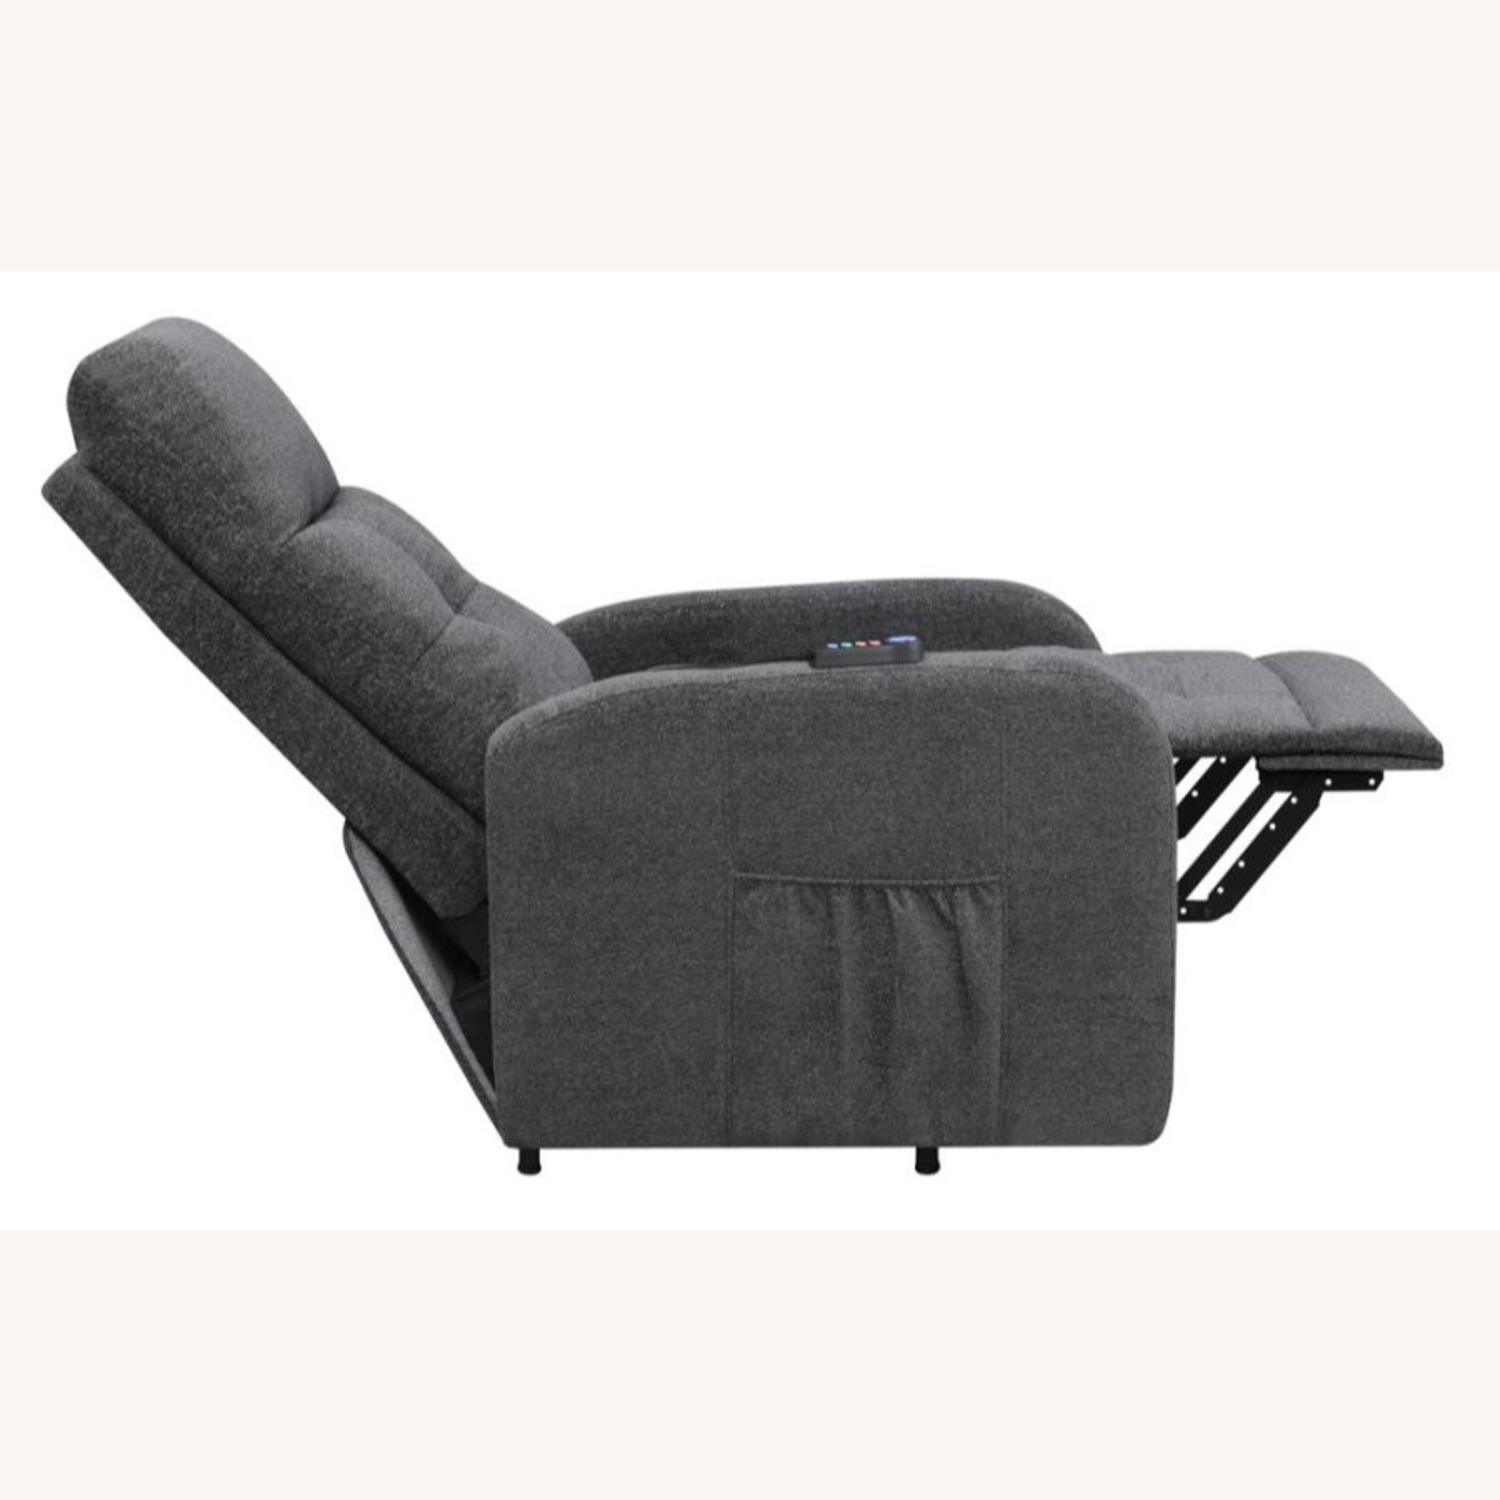 Power Lift Massage Chair In Charcoal Fabric - image-3